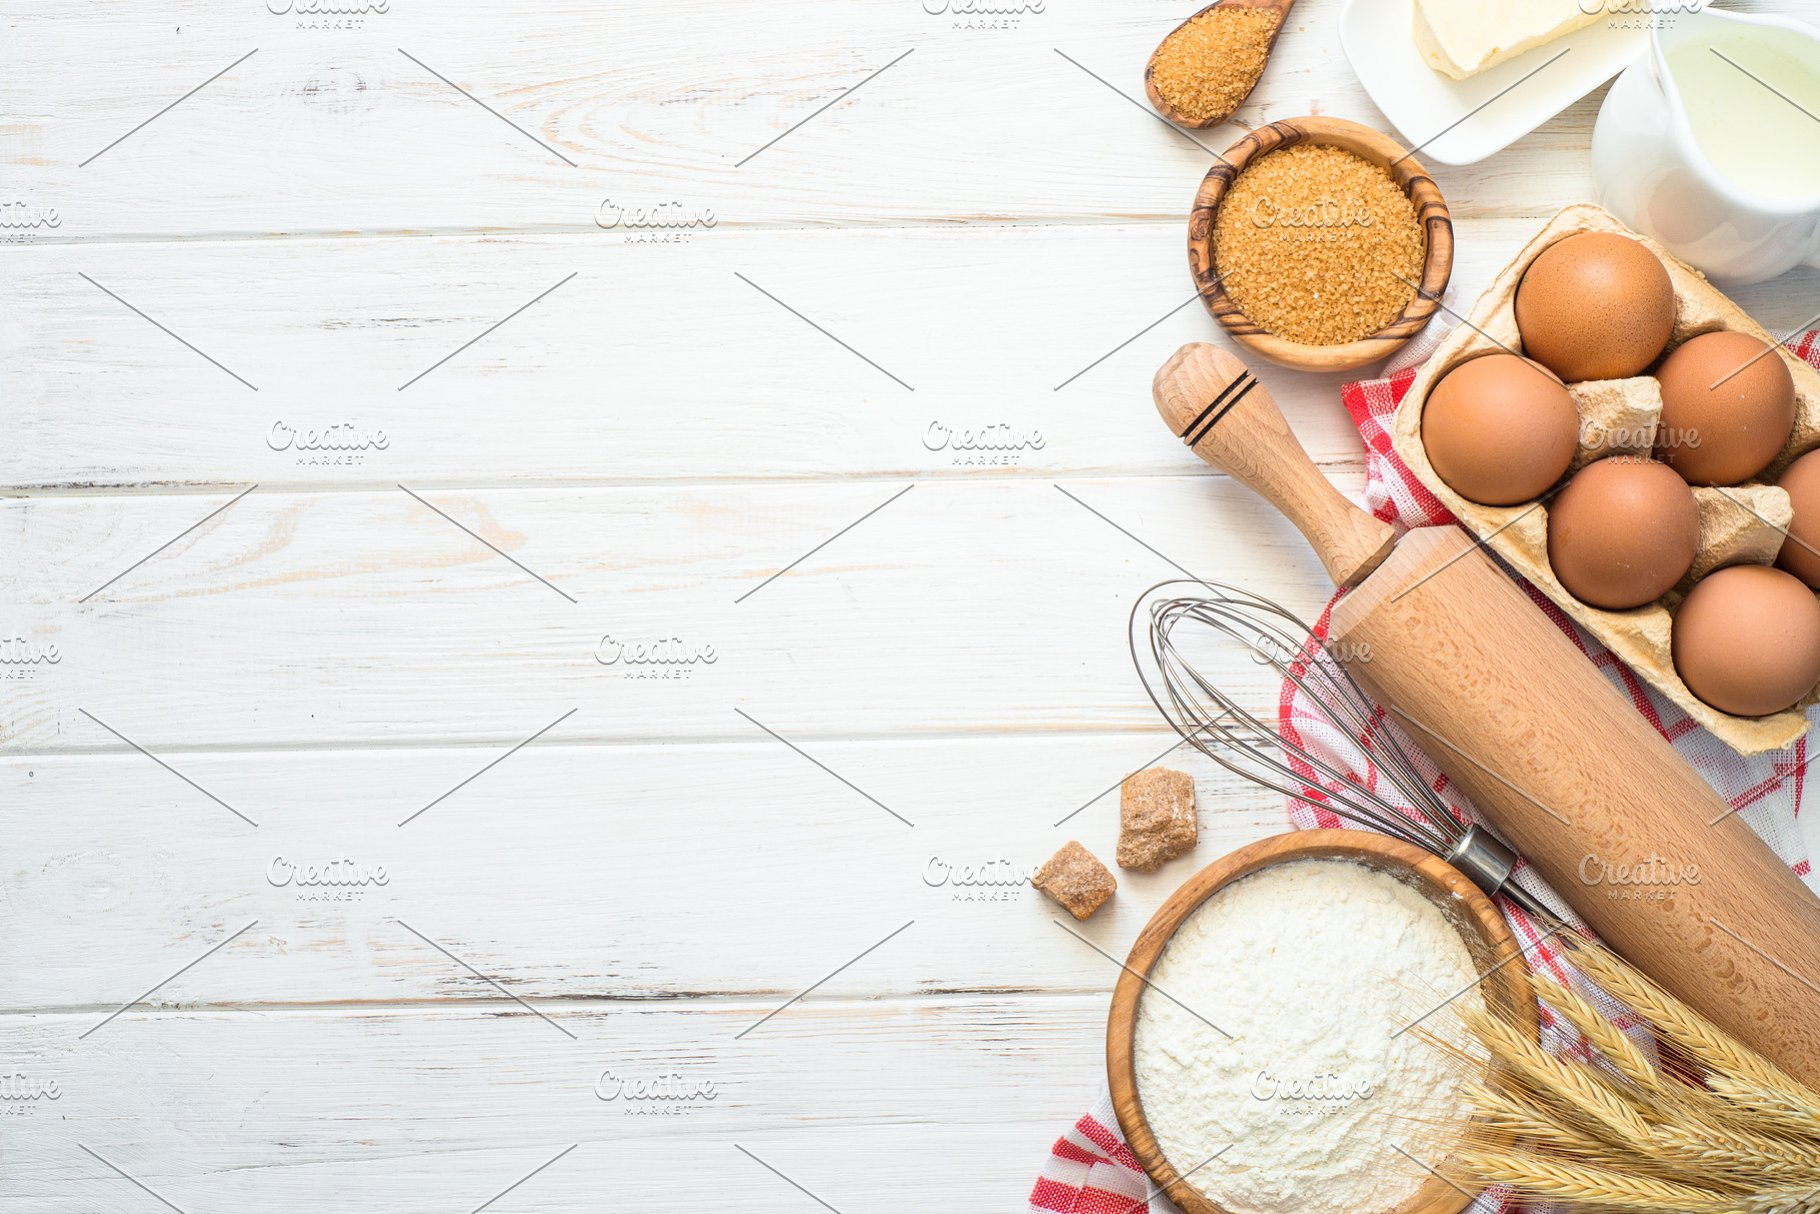 Baking background top view High Quality Food Images Creative 1820x1214